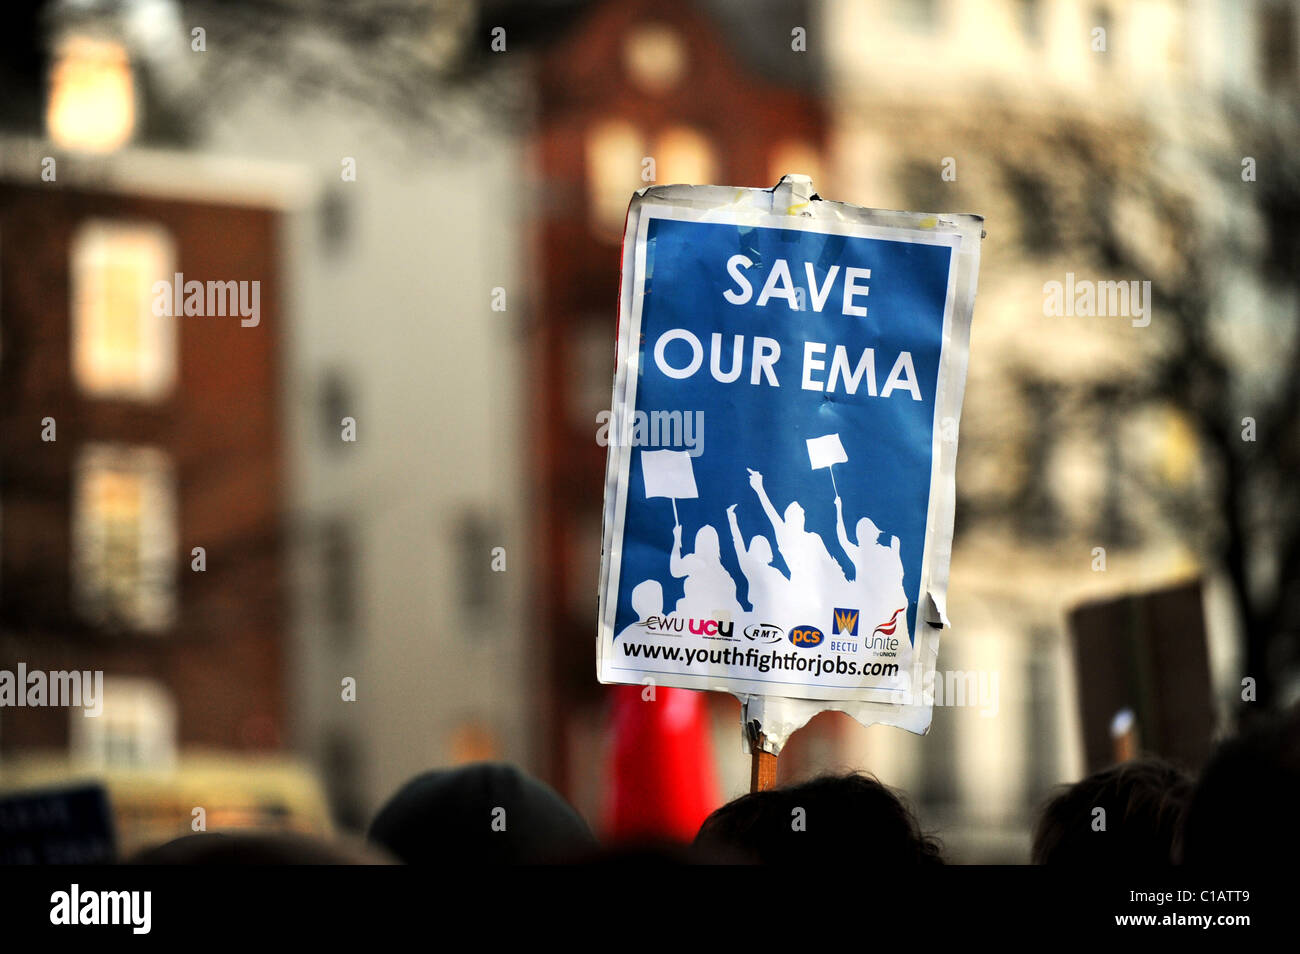 A student holds up a 'SAVE OUR EMA' placard during a protest held in Brighton - Stock Image